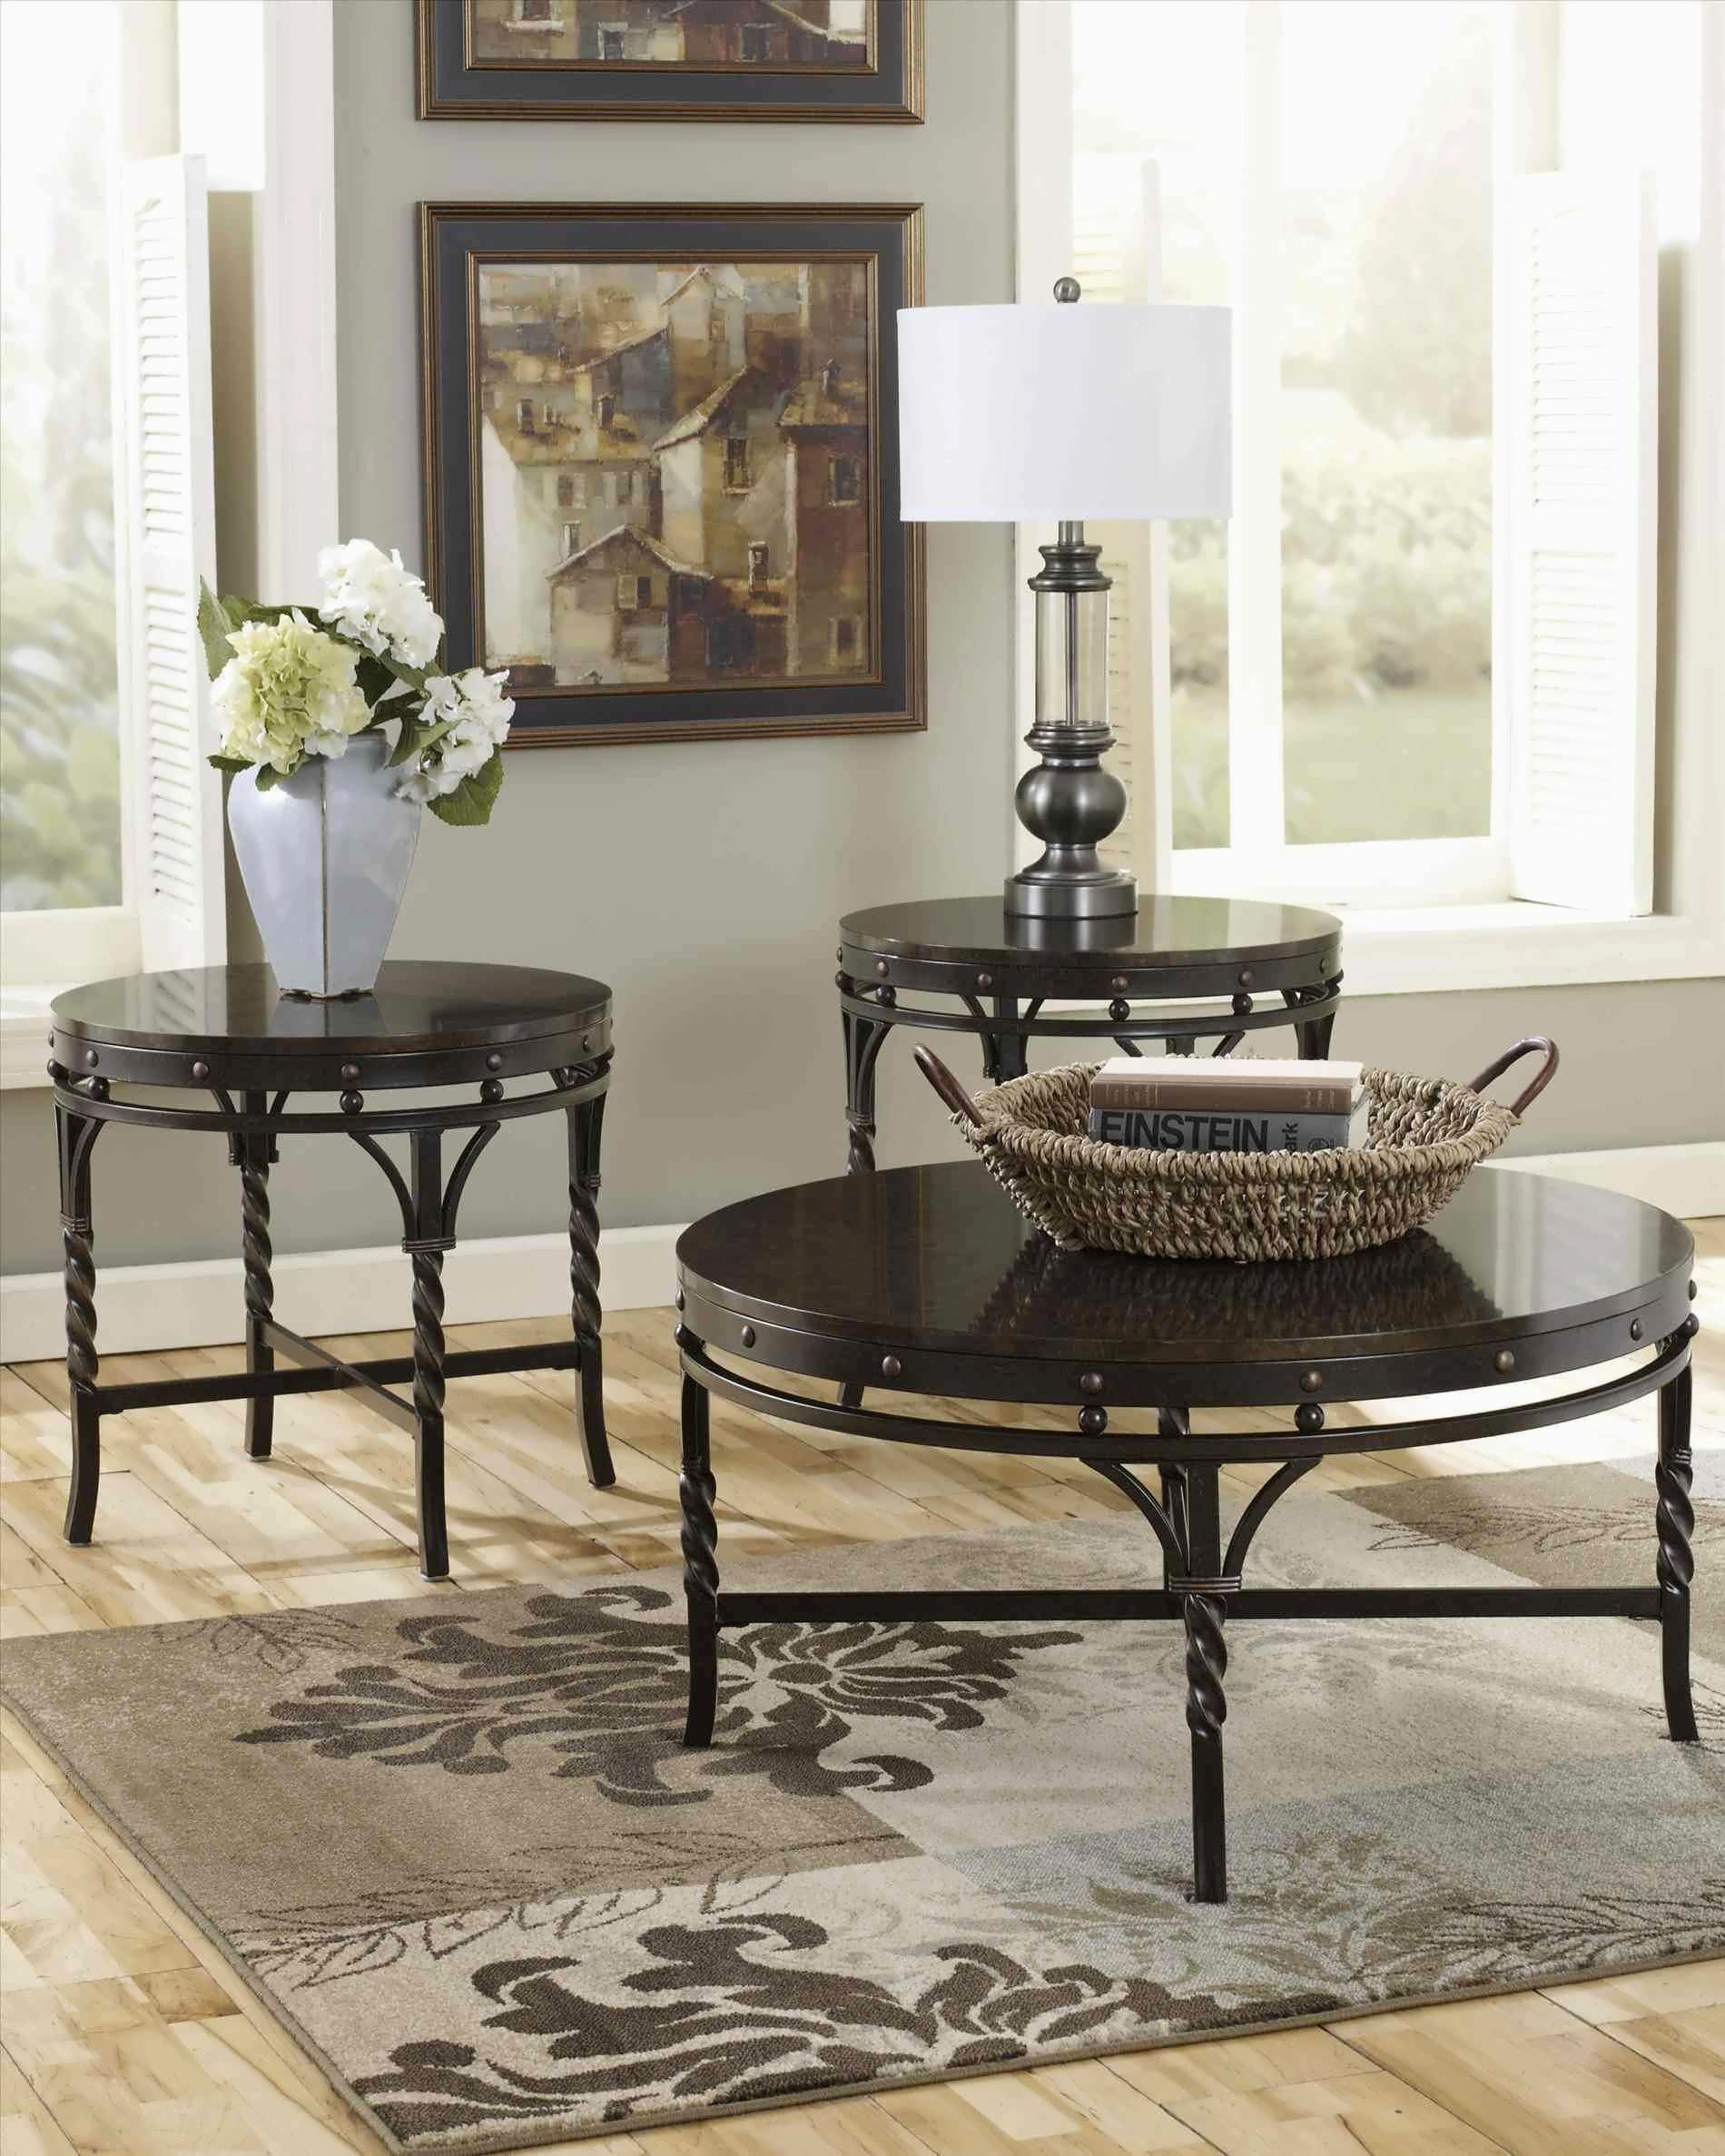 excellent mirrored sofa table concept-Lovely Mirrored sofa Table Collection